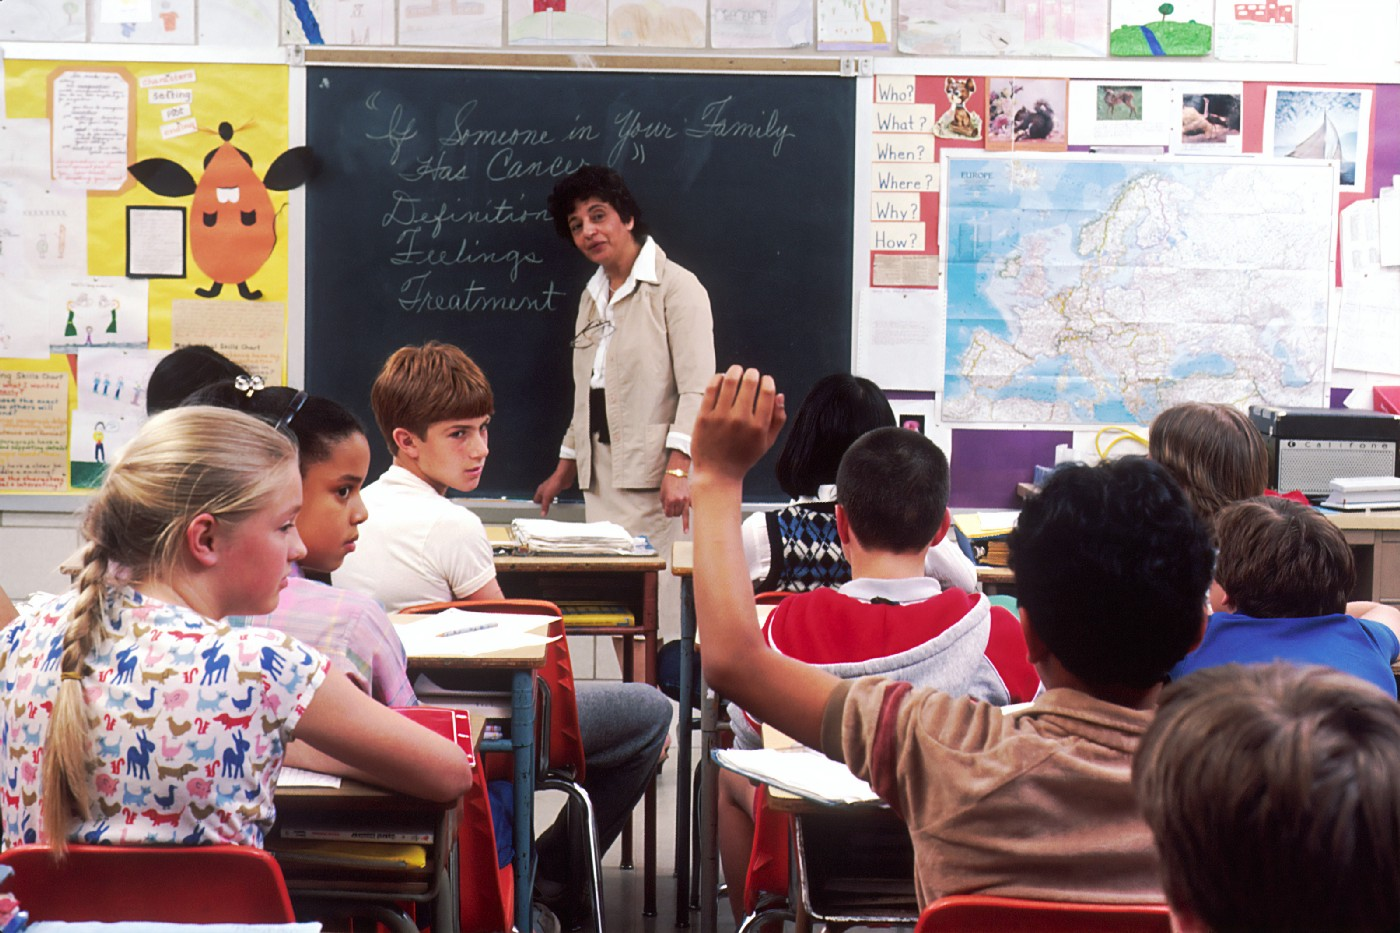 Just because you quit the job you like, it doesn't mean you failed. A teacher in front of her students teaching a lesson.